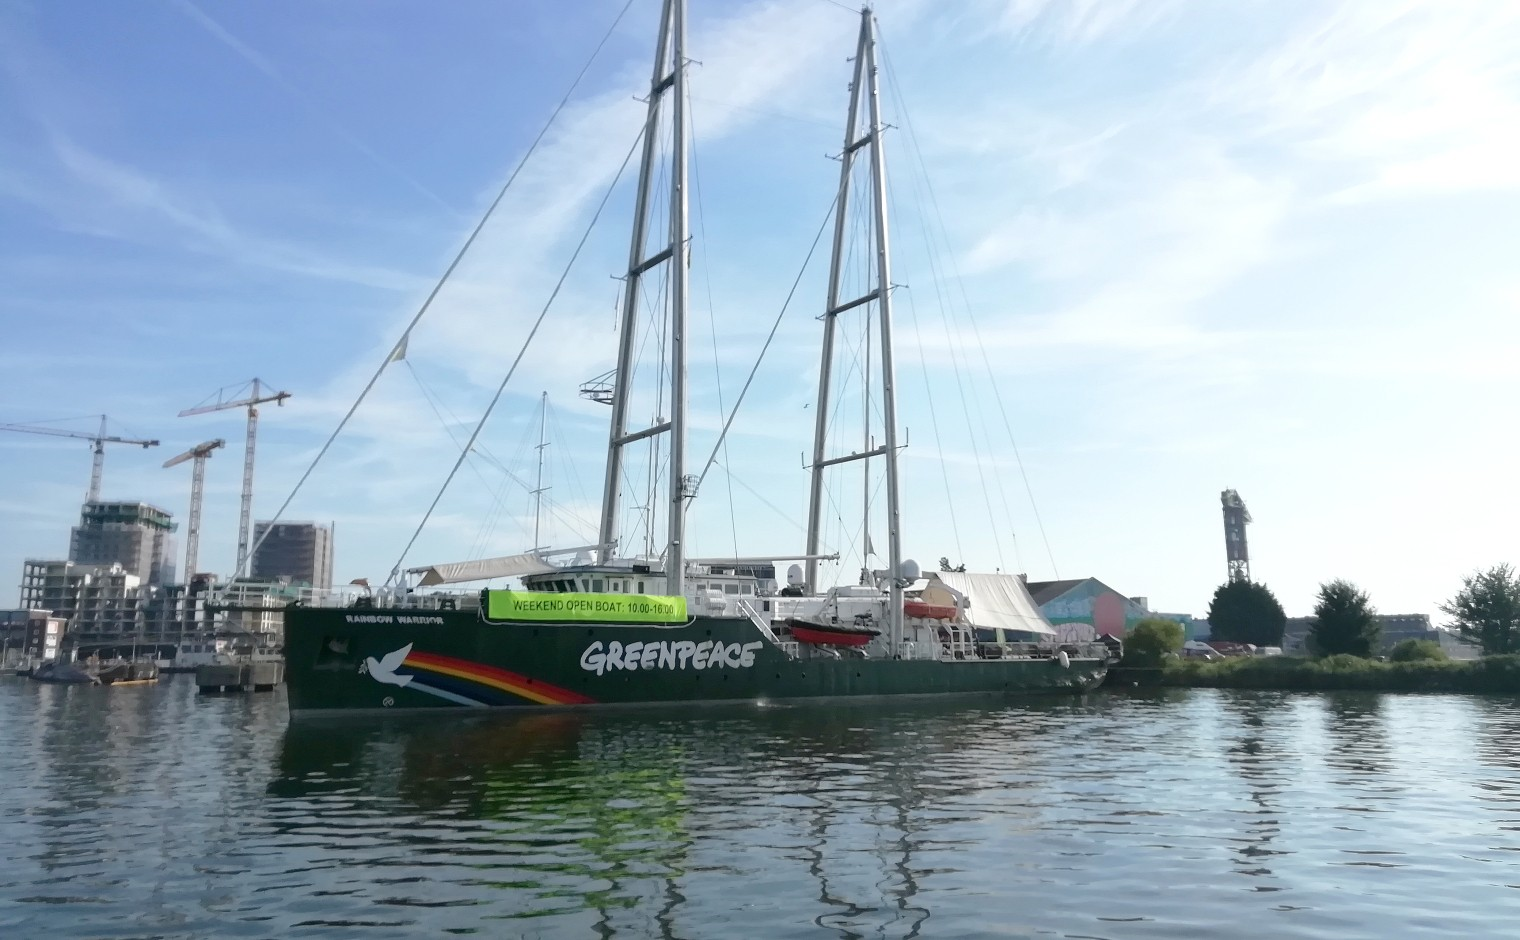 De Rainbow Warrior, in de haven in Amsterdam.